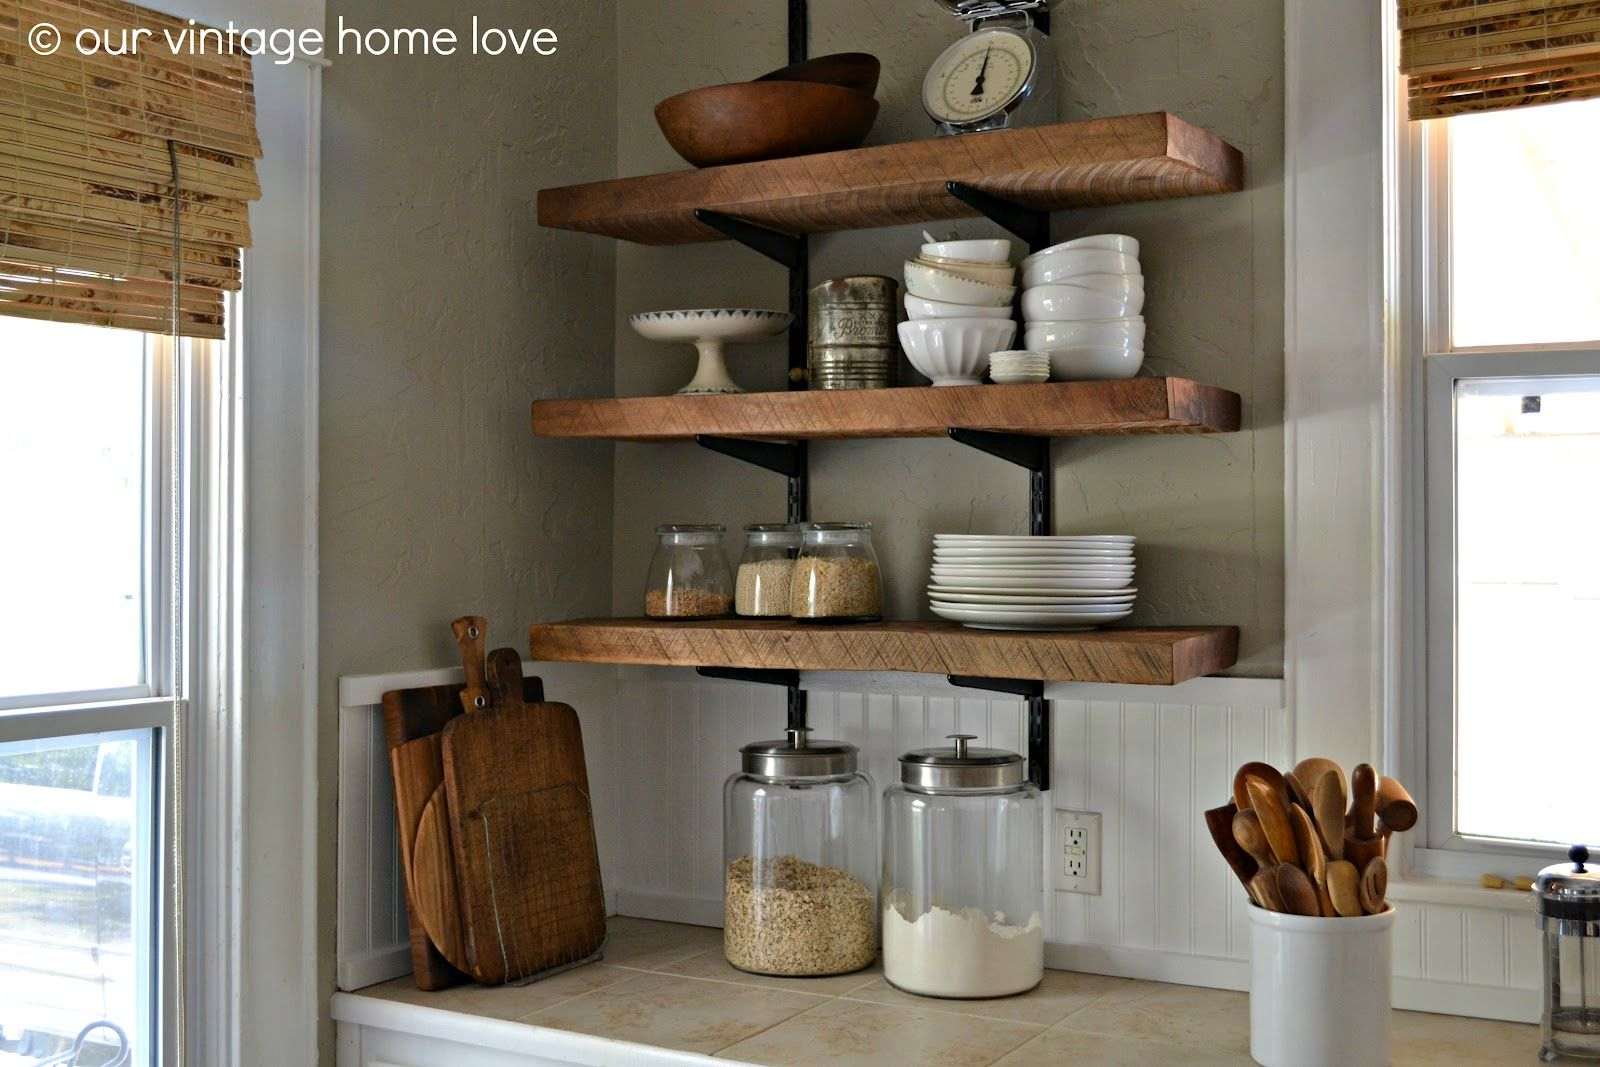 The Benefits Of Open Shelving In The Kitchen: Reclaimed Wood Open Shelving